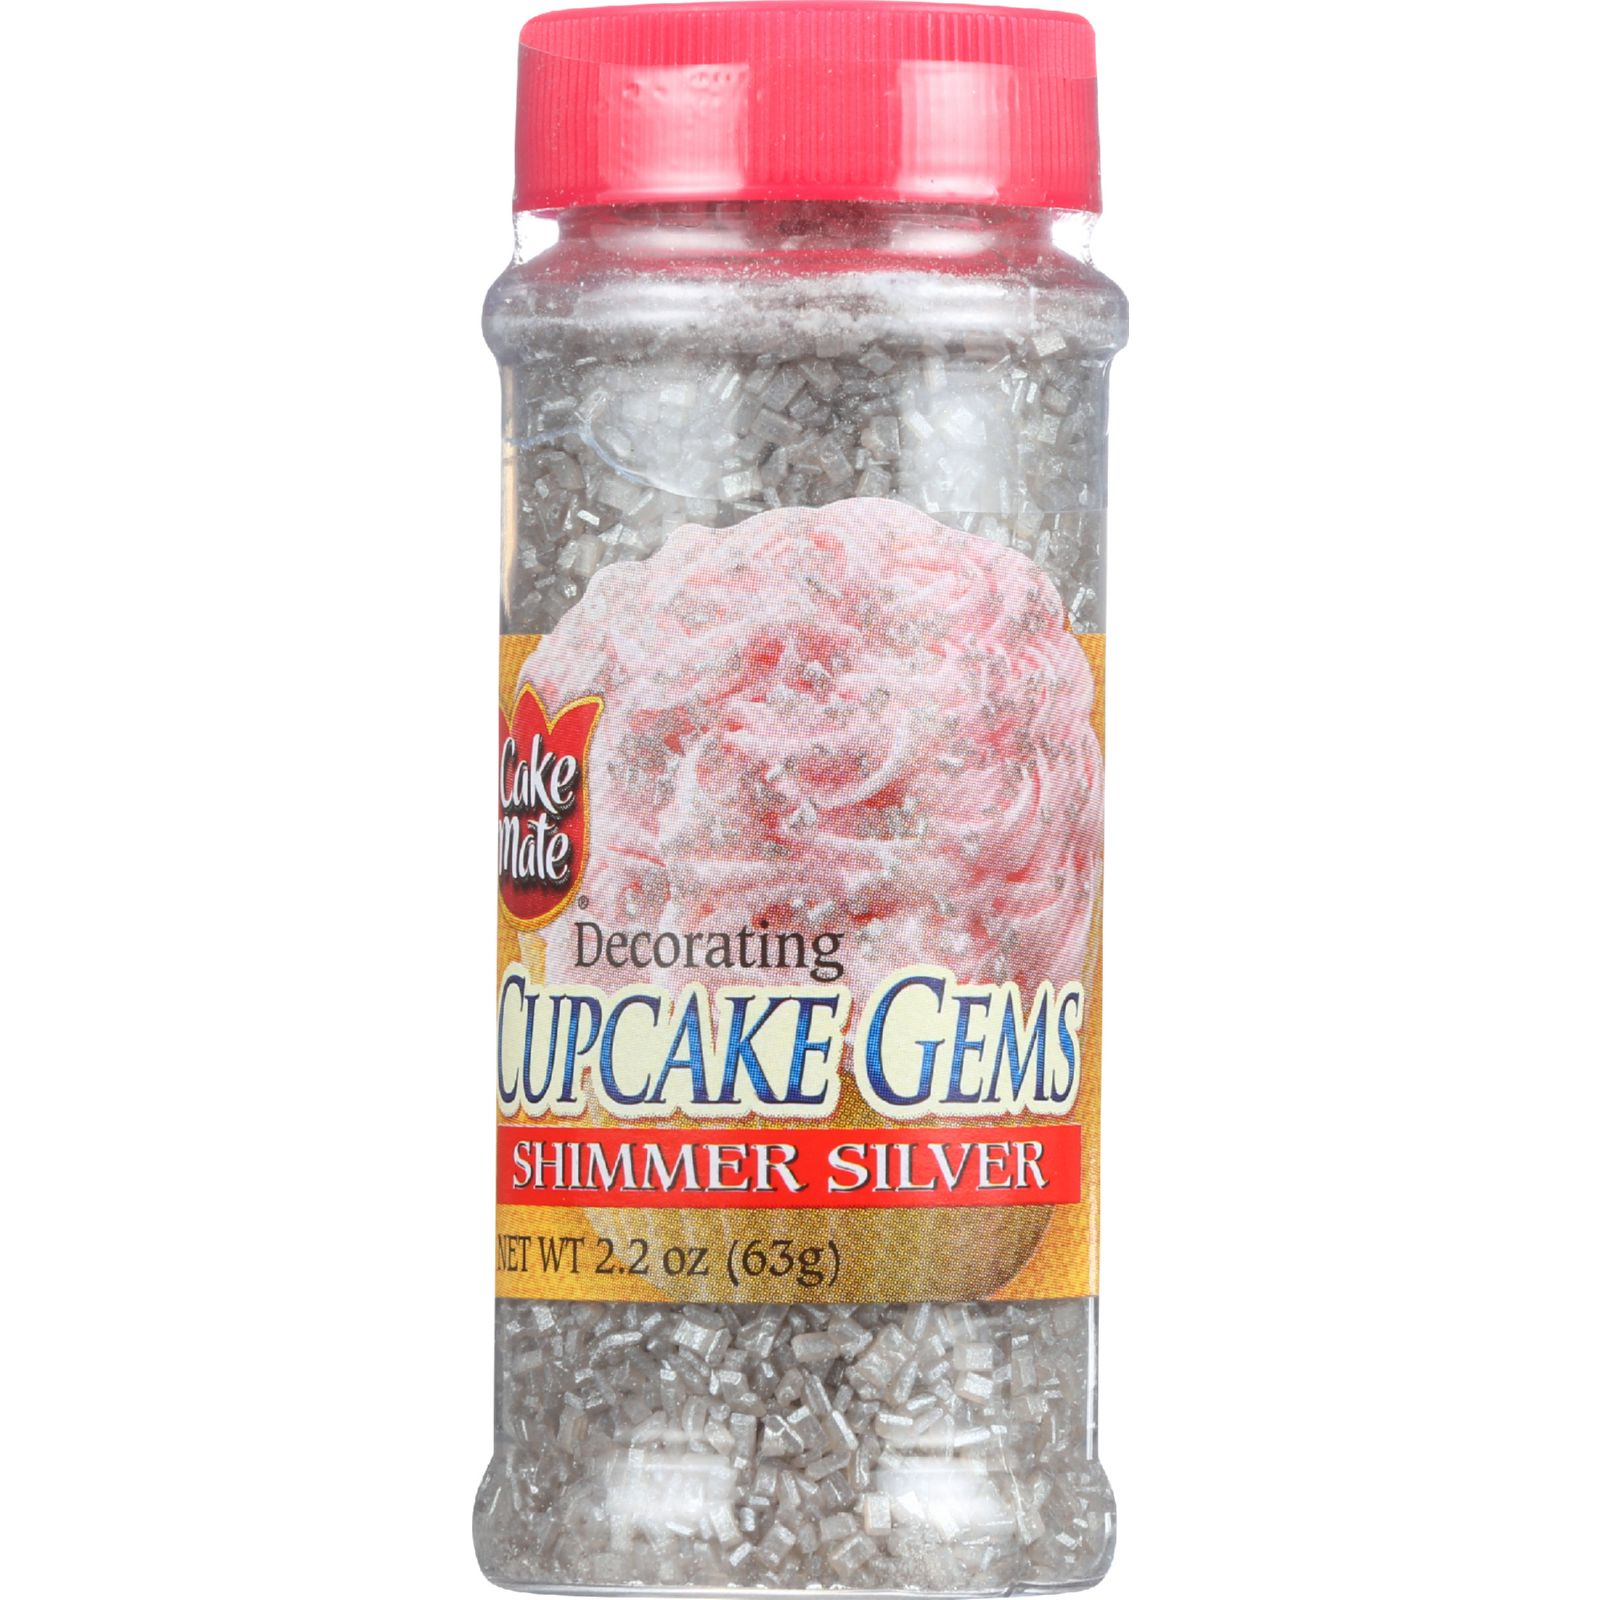 Cake Mate Cake Decor - Cupcake Gems - Sugar - Shimmer Silver - 2.2 oz - case of 6